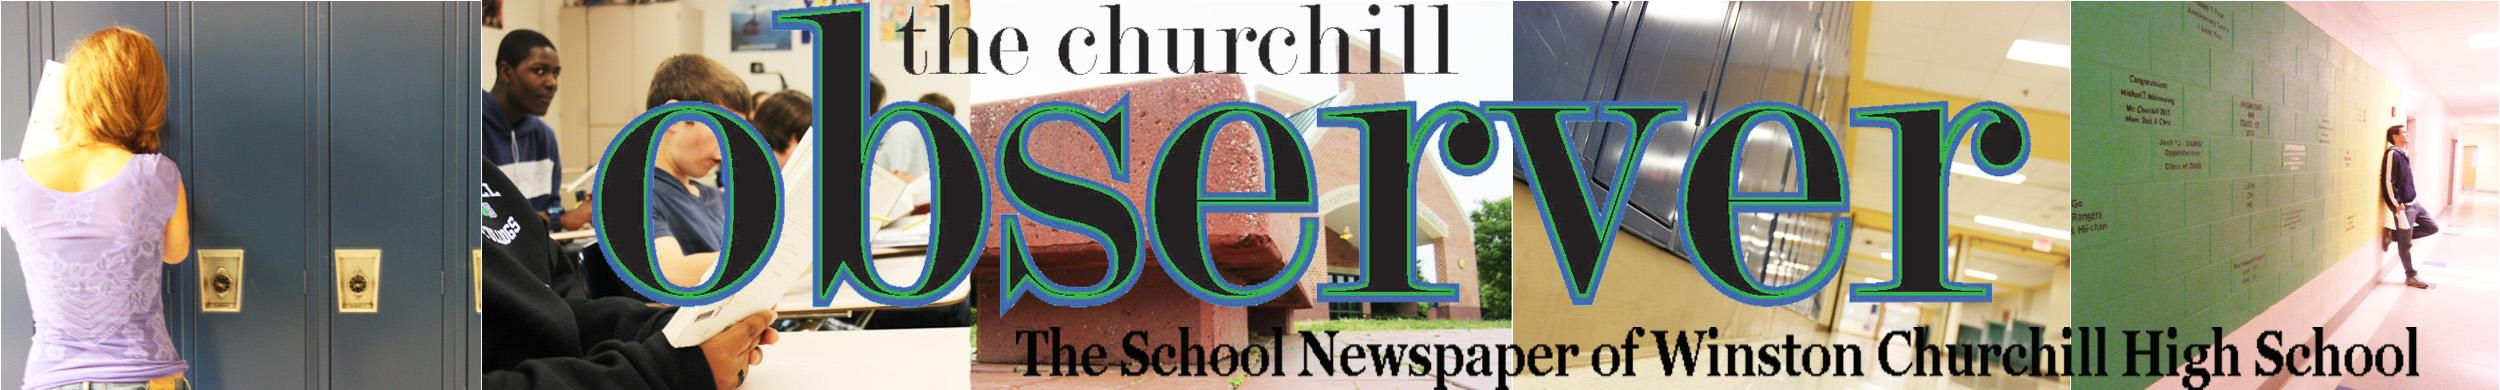 The School Newspaper of Winston Churchill High School